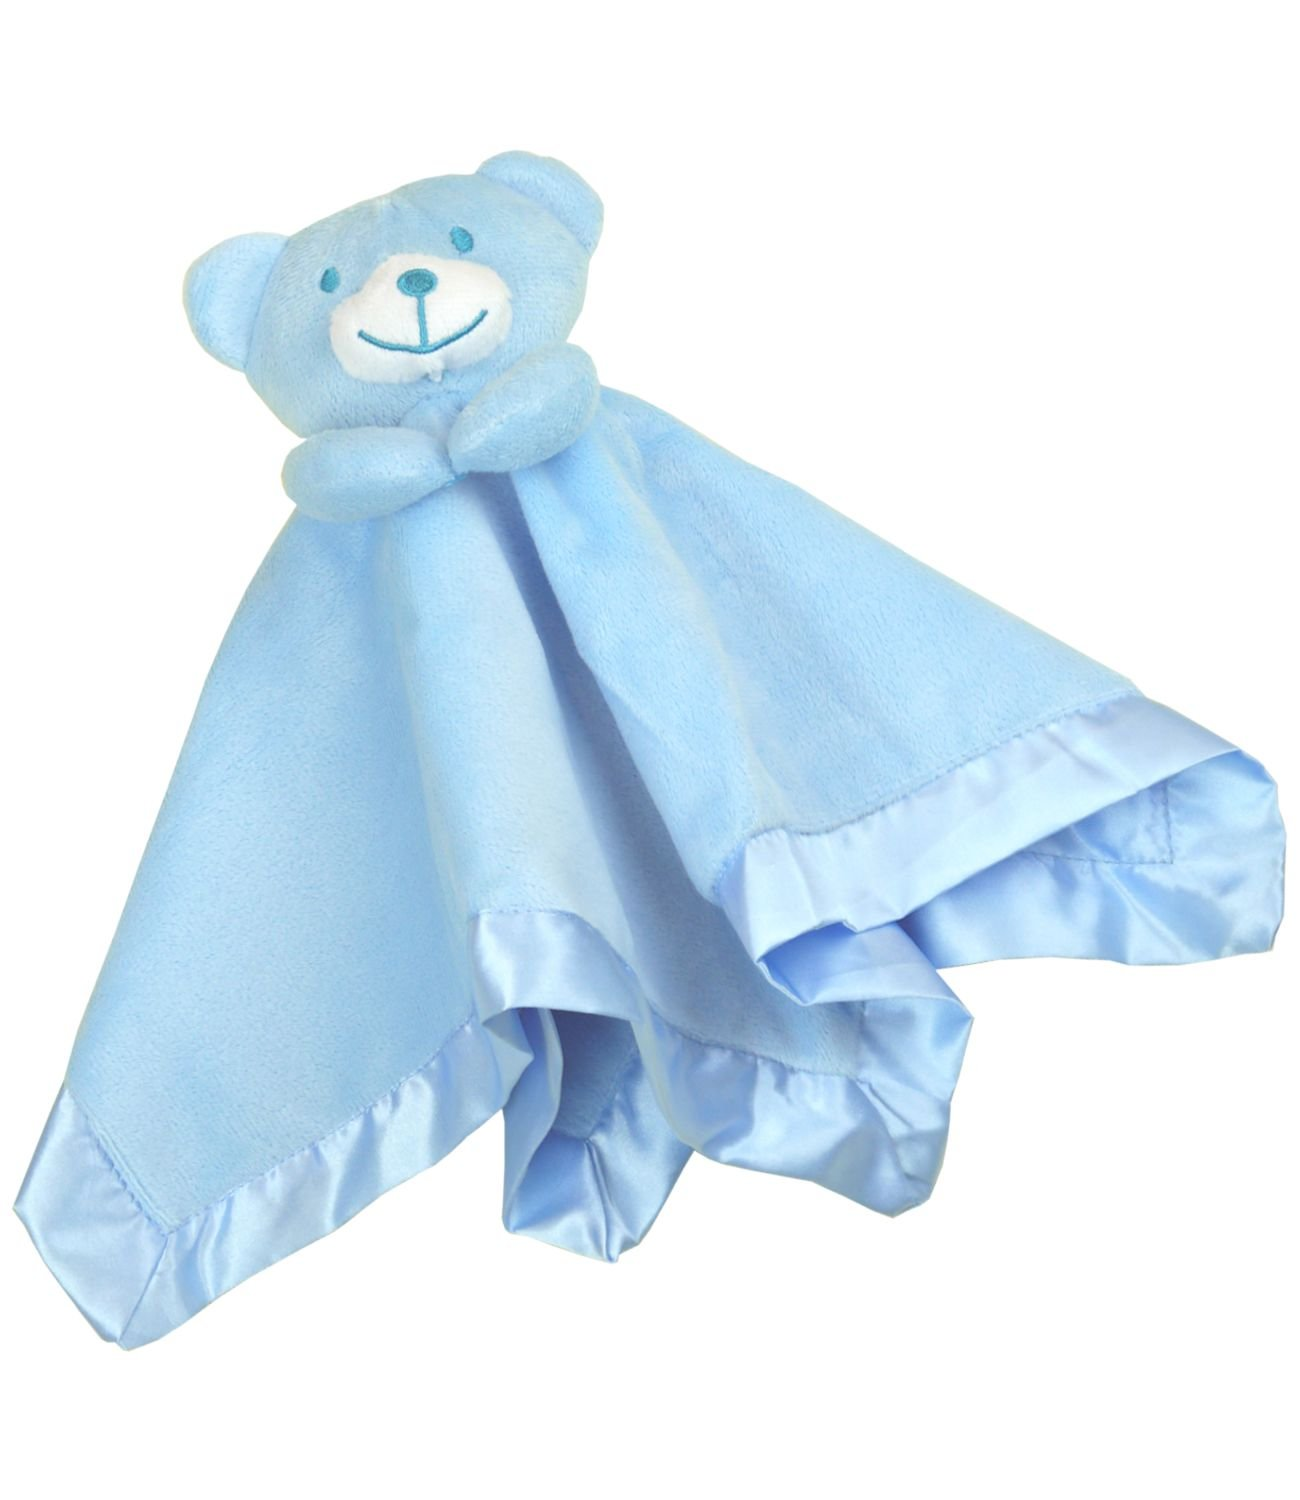 Gorgeous Blue Boys Supersoft Plush Velour Teddy Bear Baby Comforter//Blanket